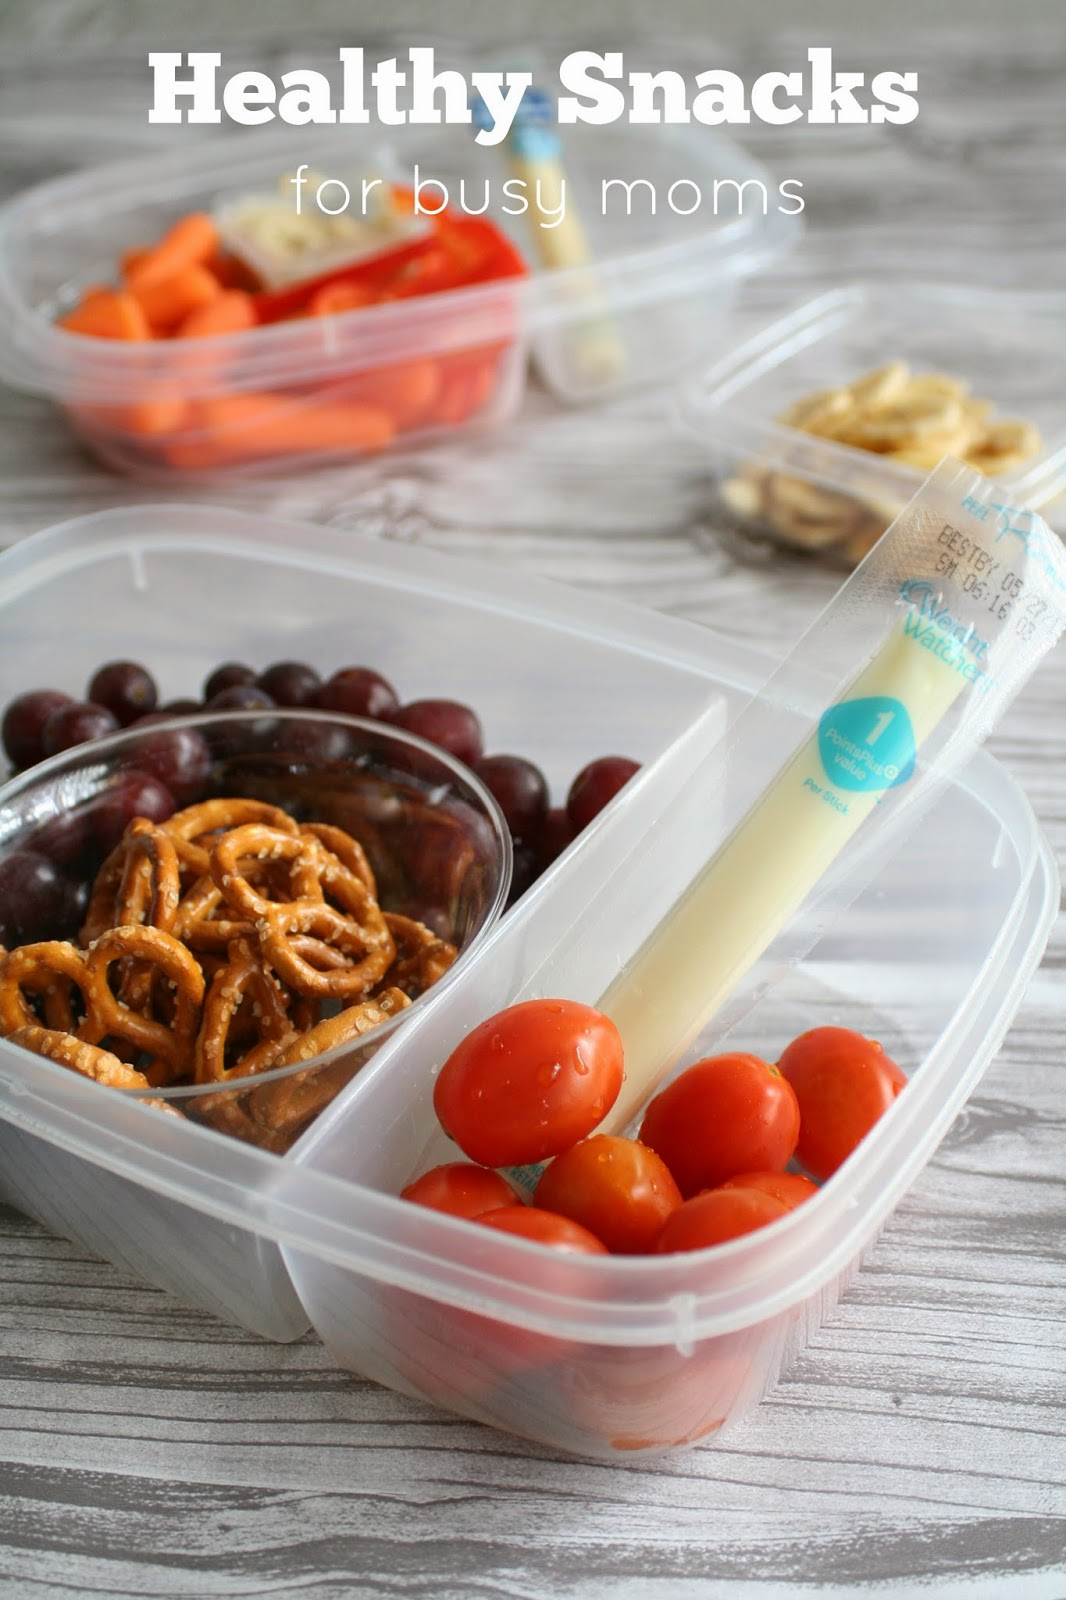 Healthy Snacks for Busy Moms | jordansonion.com